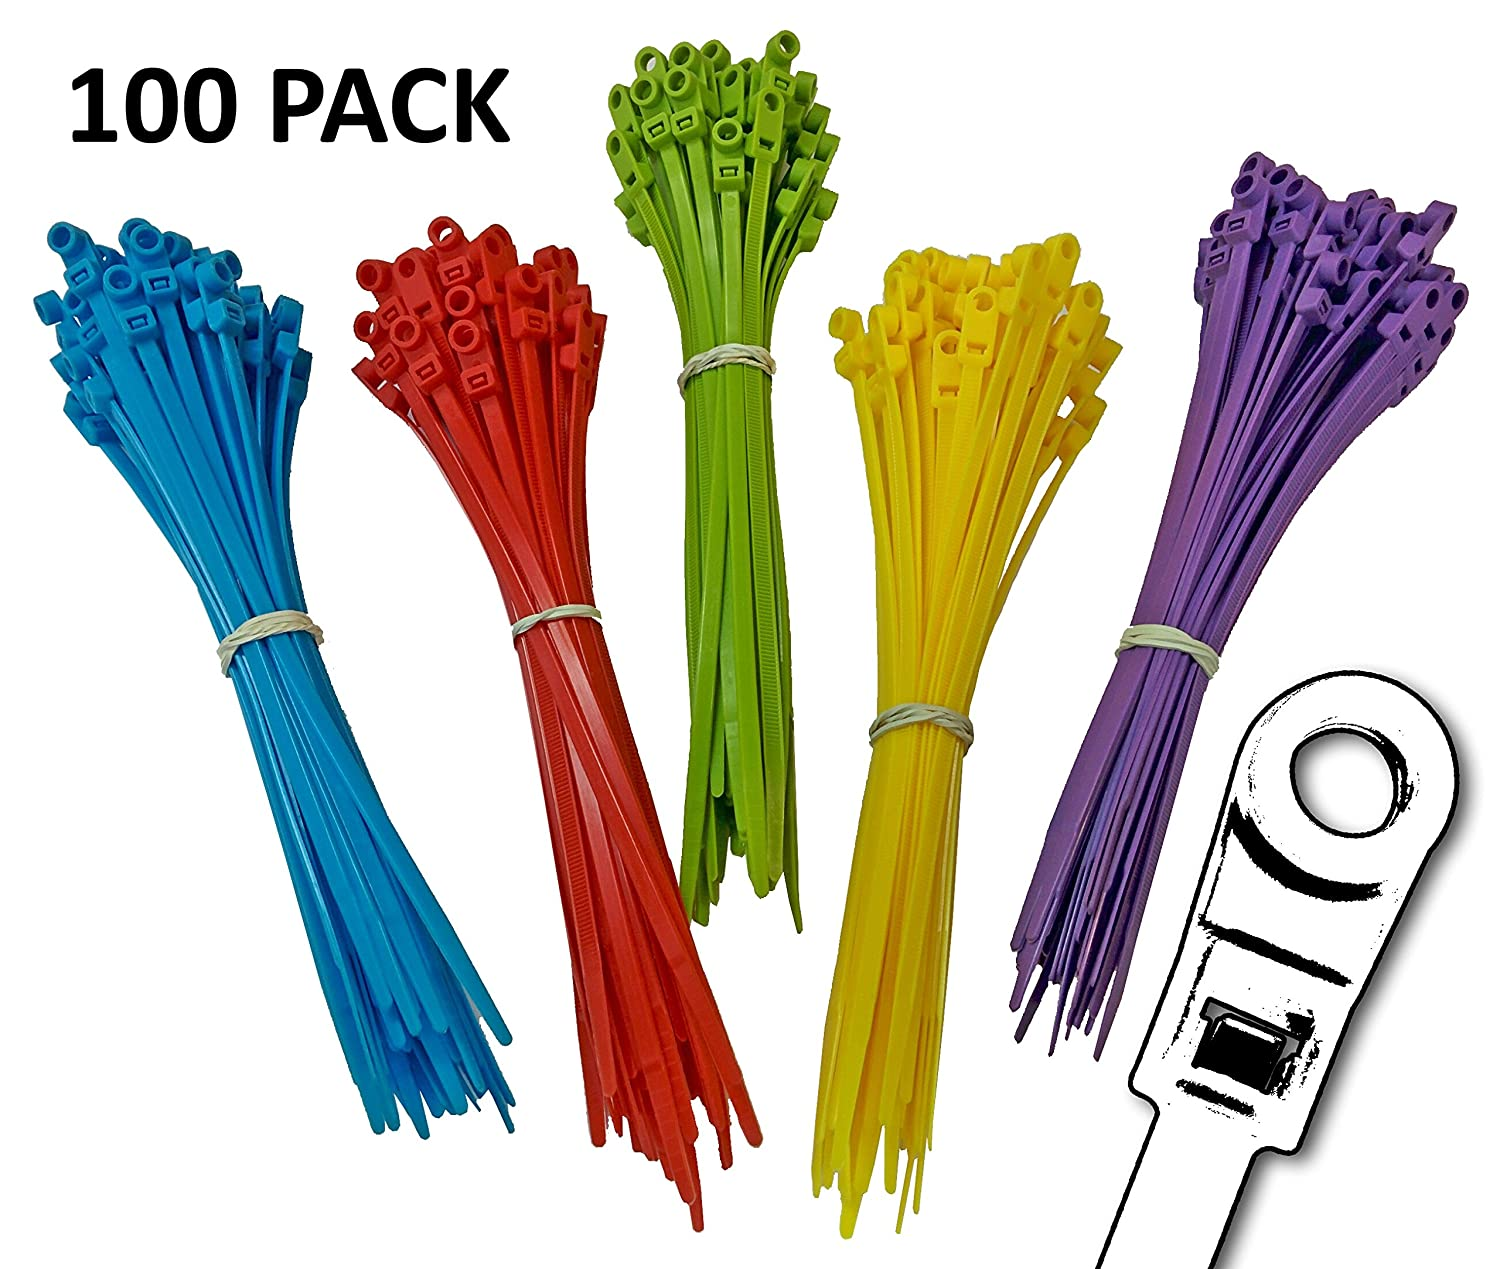 Multicolor Blue, Red, Green, Yellow, Fuchsia, Orange, Gray, Purple 50 lbs 8 Nylon Mounting Cable Ties 500 Pack